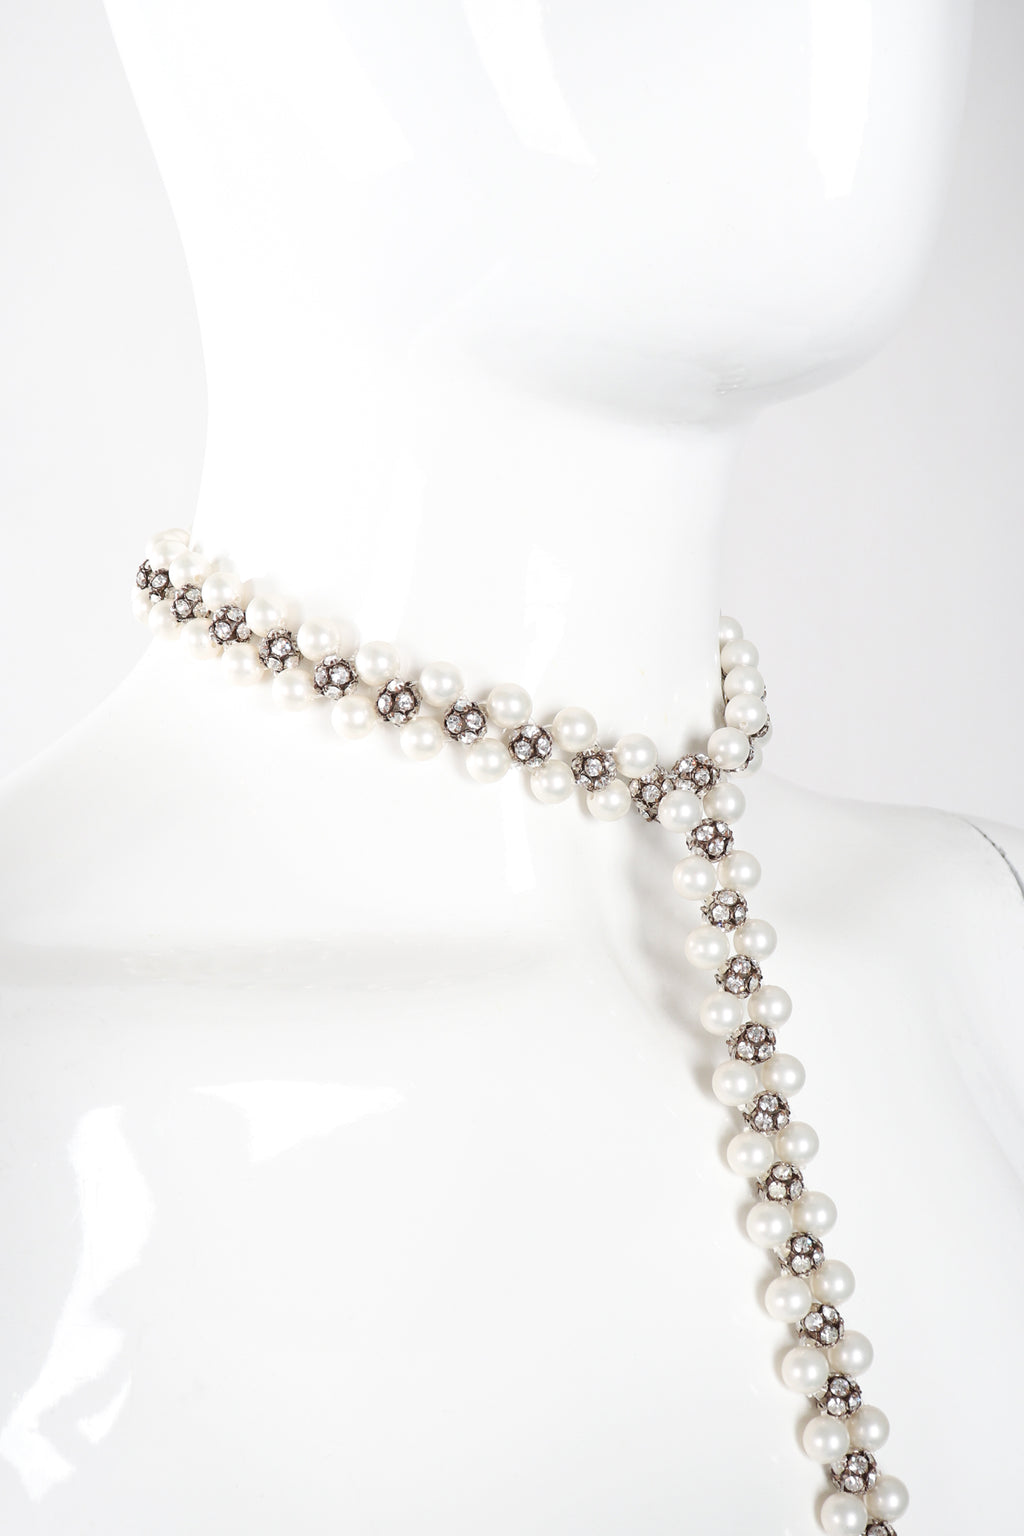 Recess Los Angeles Vintage Pearl Rhinestone Drop Bondage Lead Choker Y Necklace